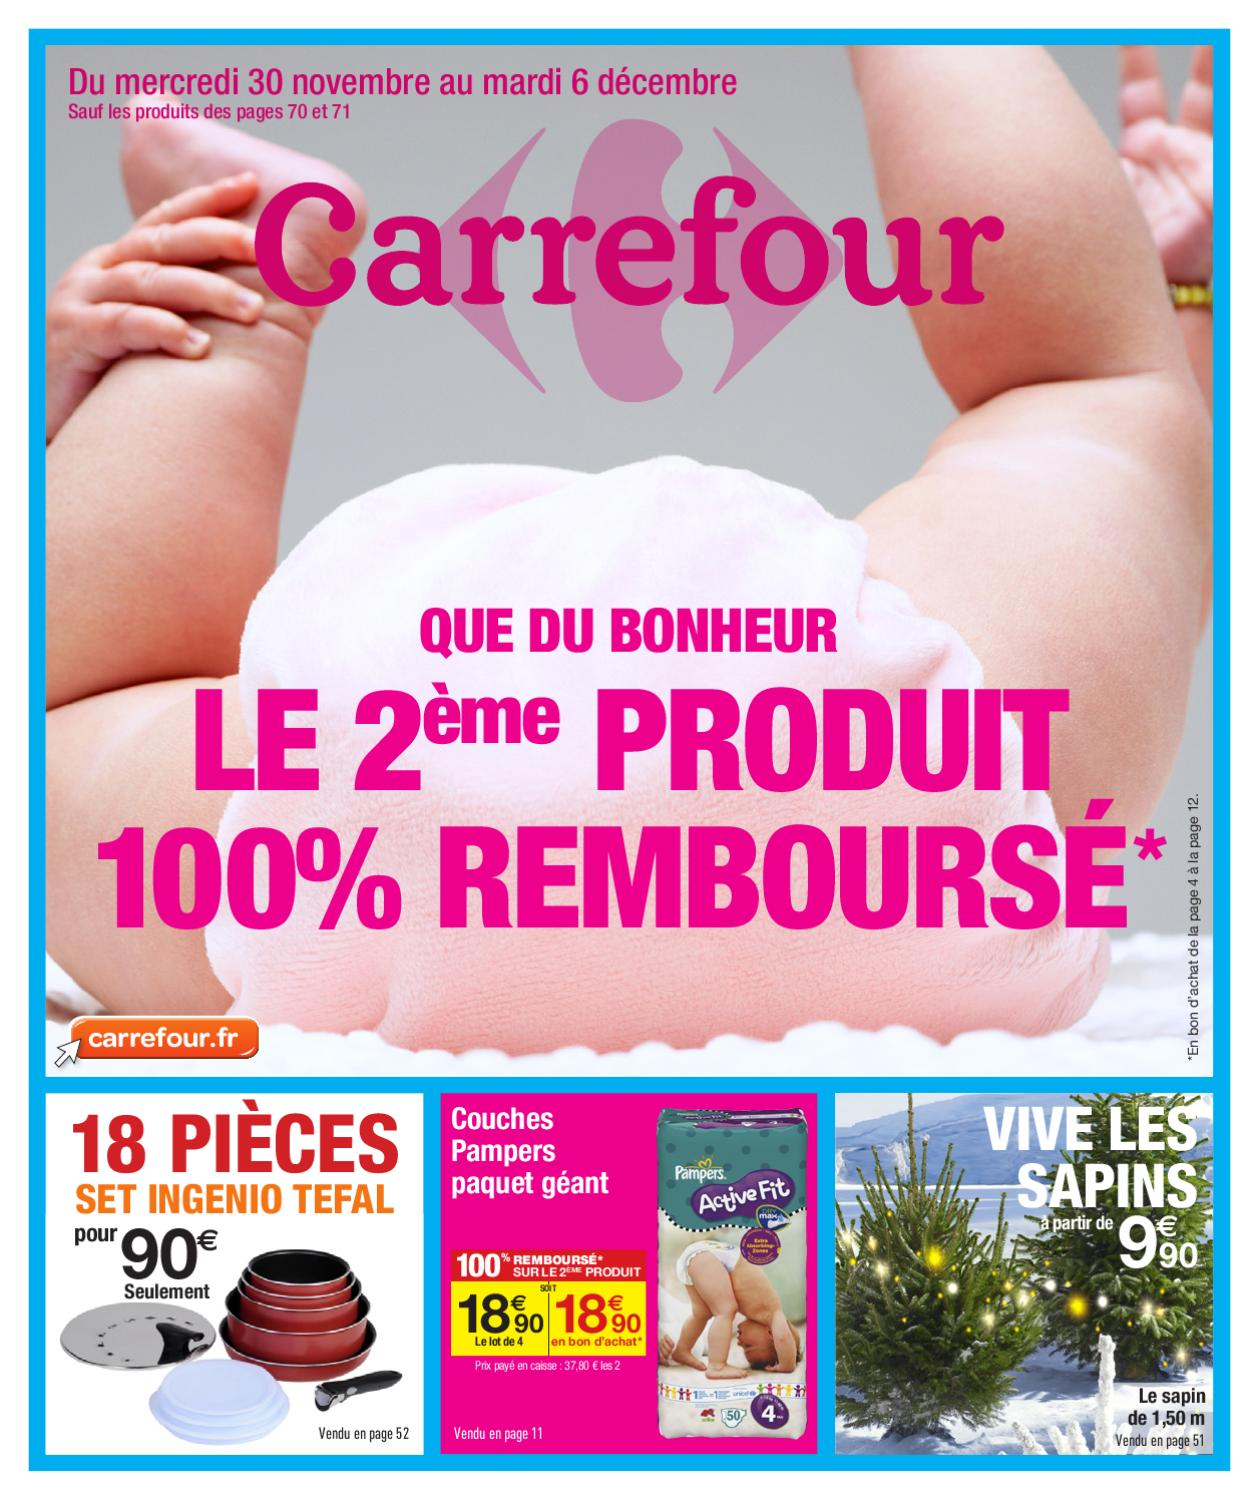 Carrefour061211 By Boïboï Bébélus Issuu